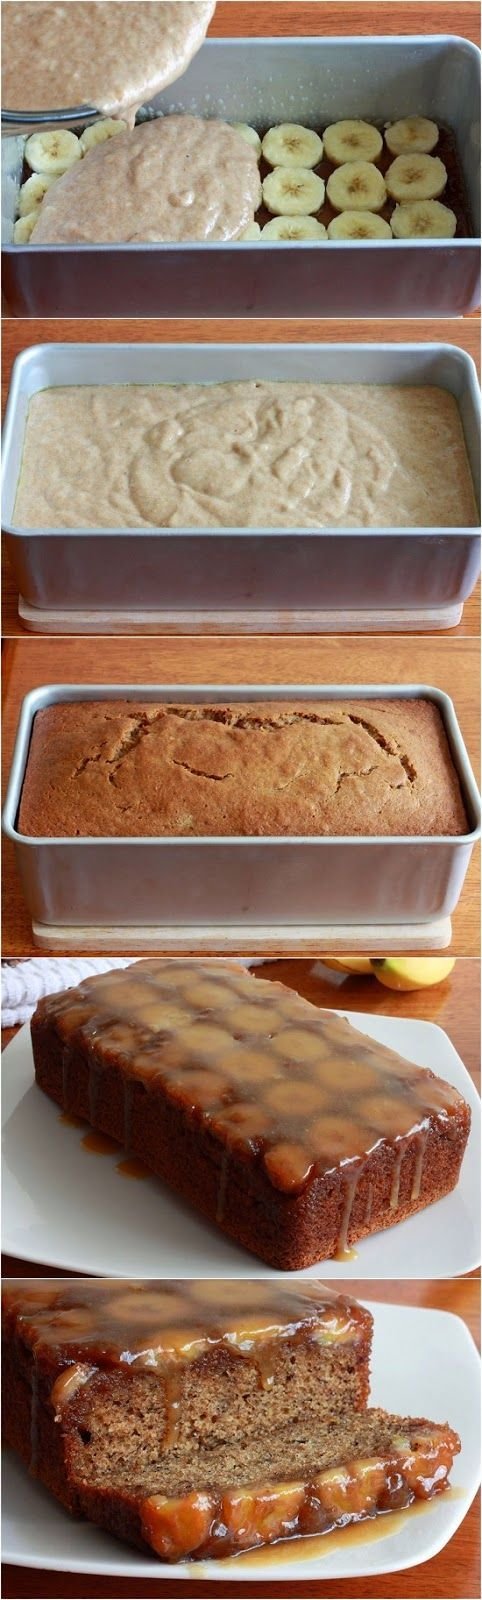 The Best Ever Upside Down Banana Bread with Caramel Glaze by DaringGourmet.com